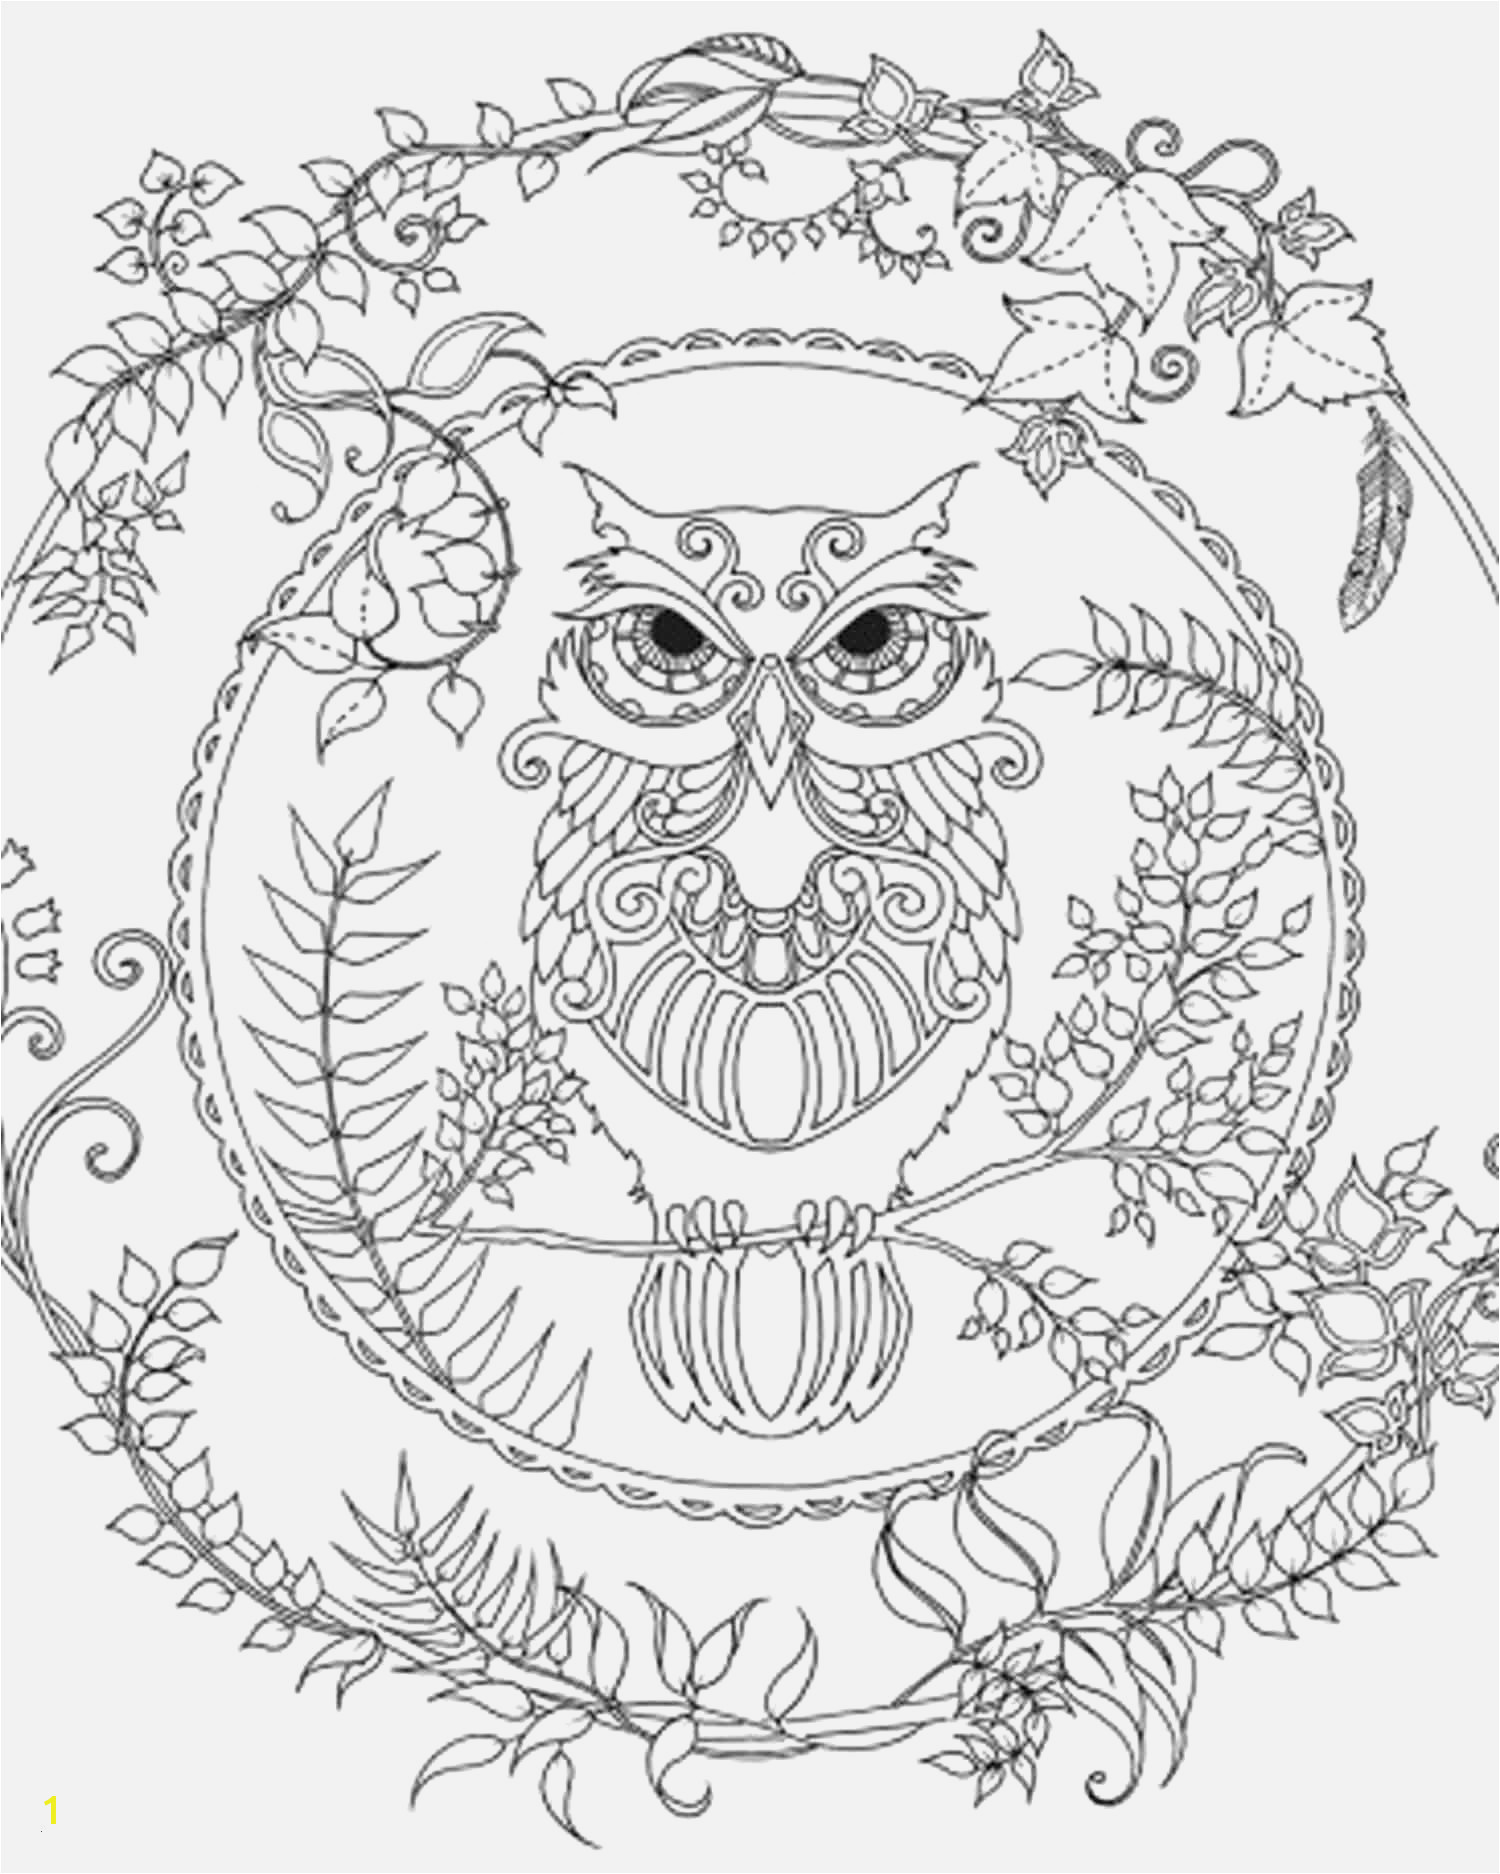 Difficult Coloring Pages Printable Intricate Coloring Pages New 46 Fresh Difficult Coloring Pages